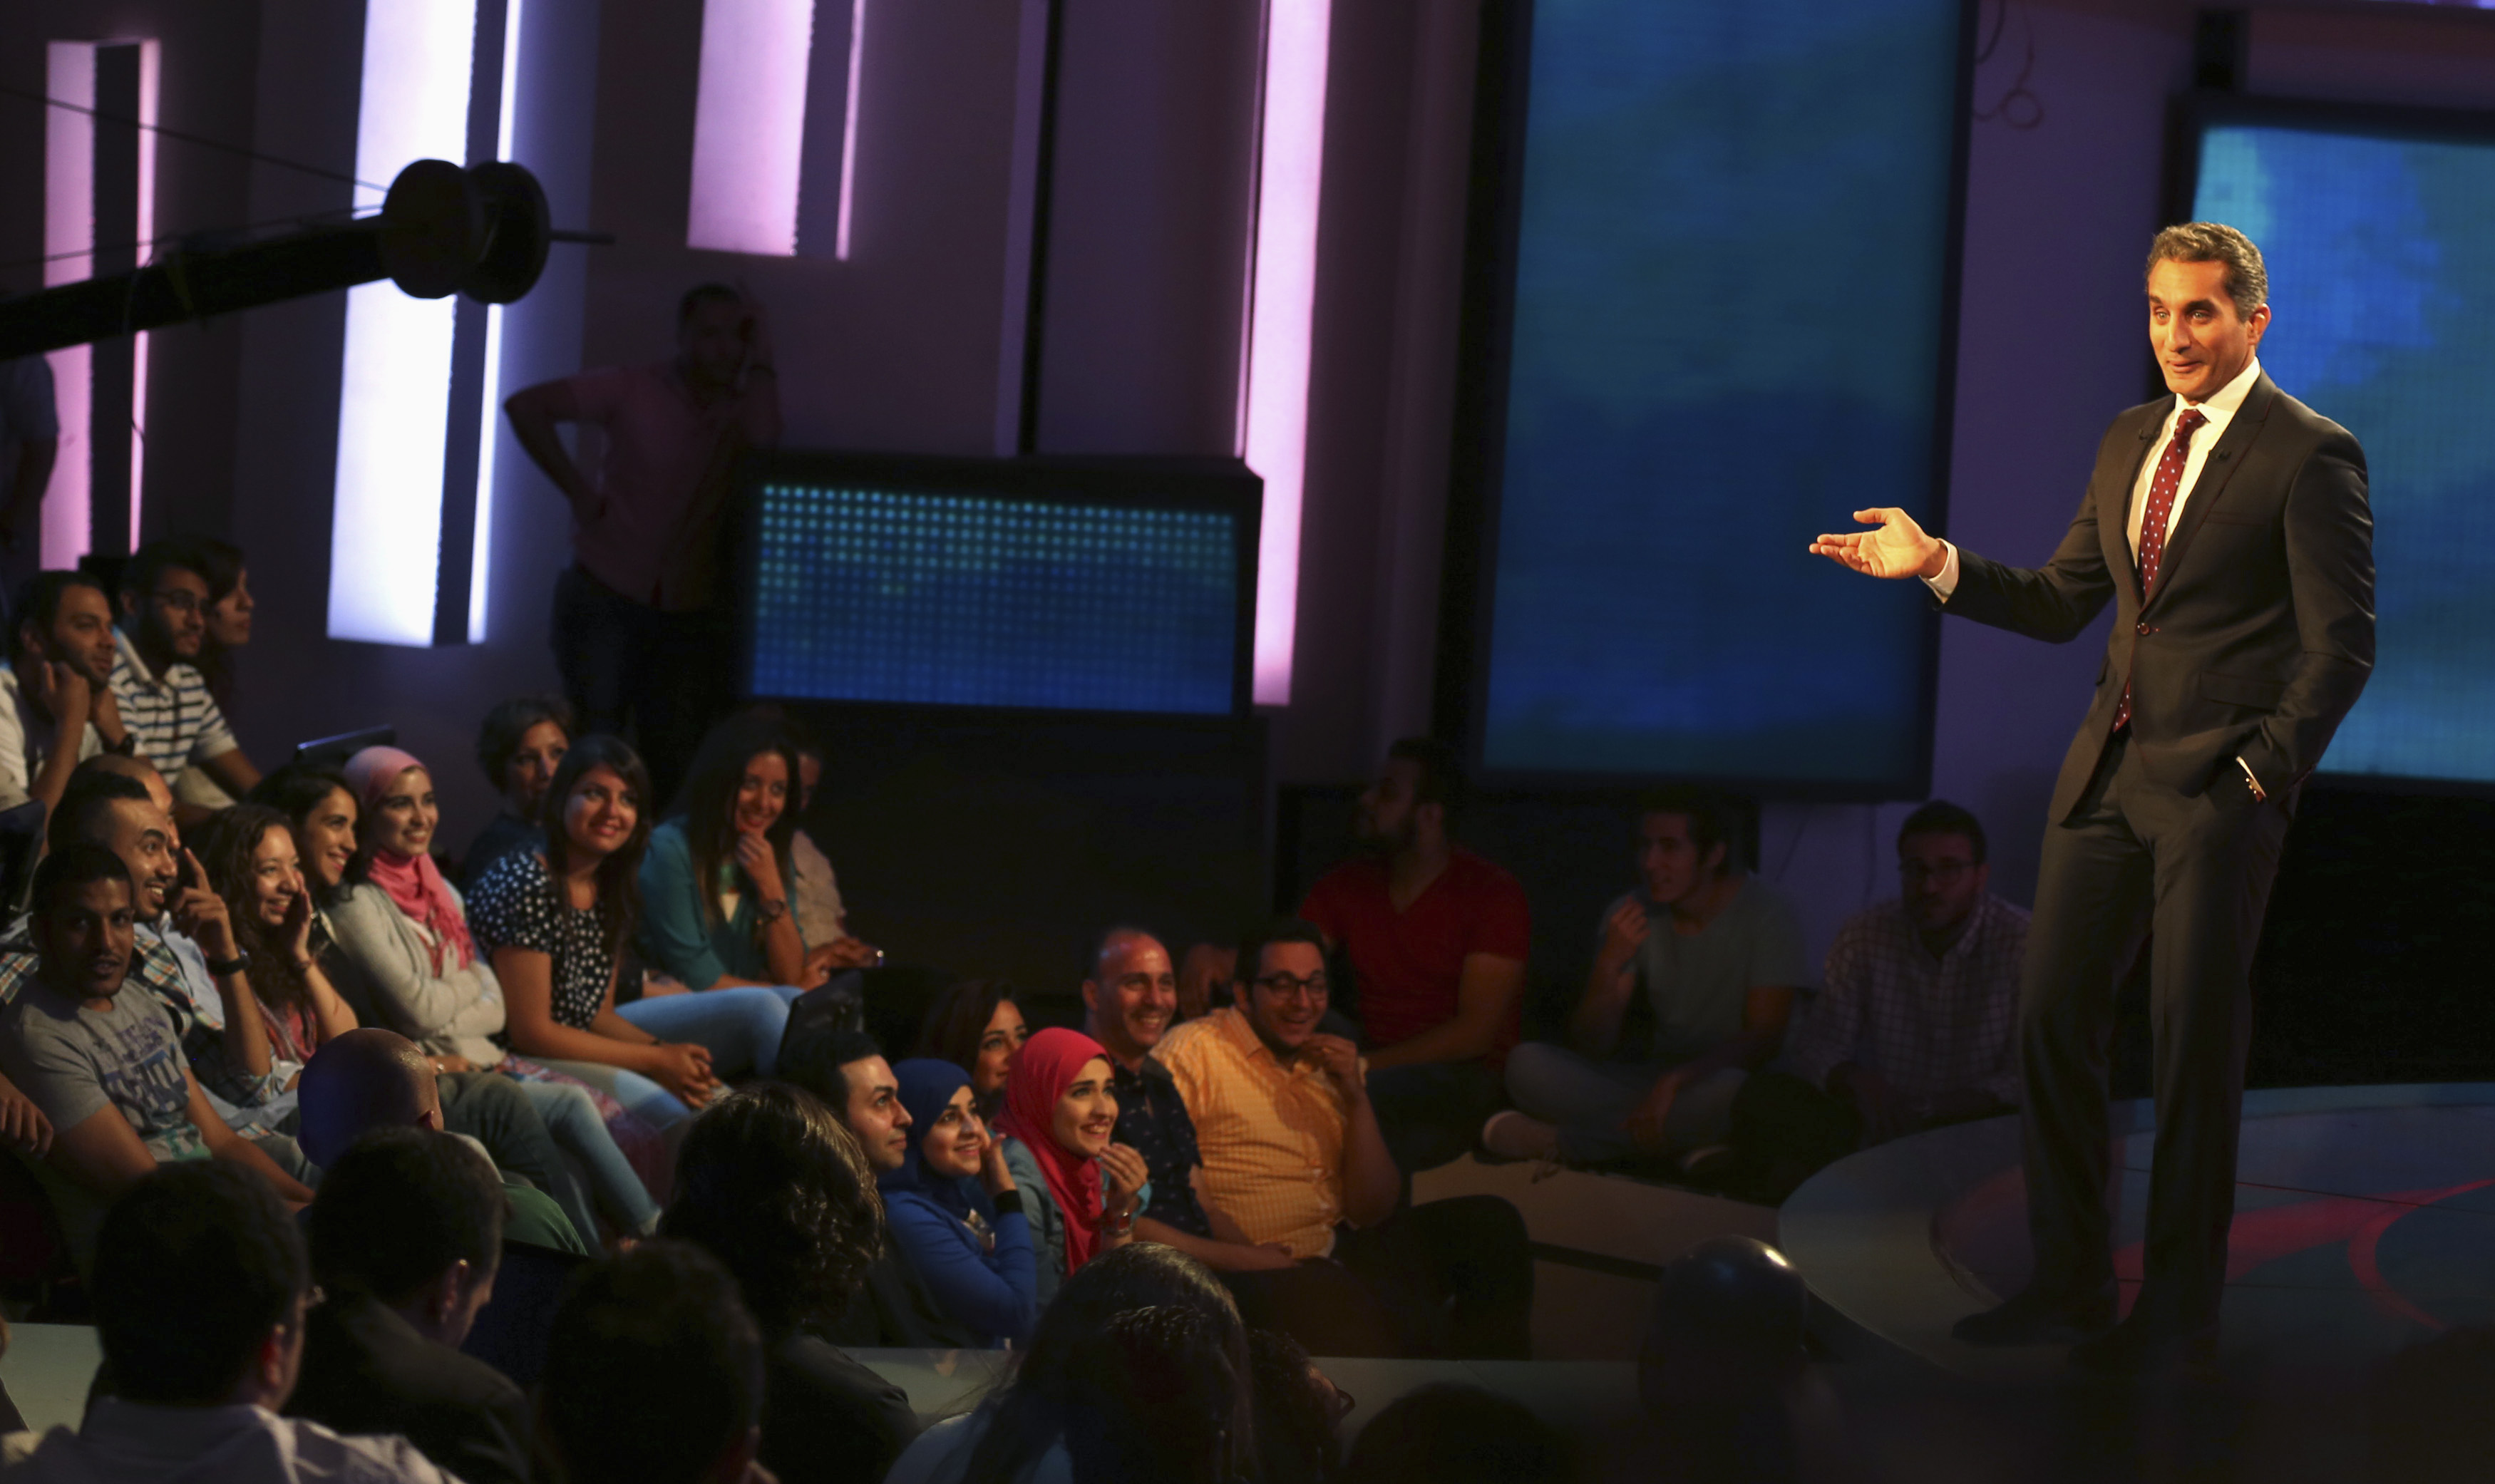 """Egypt's TV satirist, Bassem Youssef, said his show had been cancelled amid speculation it was because his latest script poked fun at a presidential election won by the former army chief .Bassem Youssef is often referred to as the """"Egyptian Jon Stewart."""""""